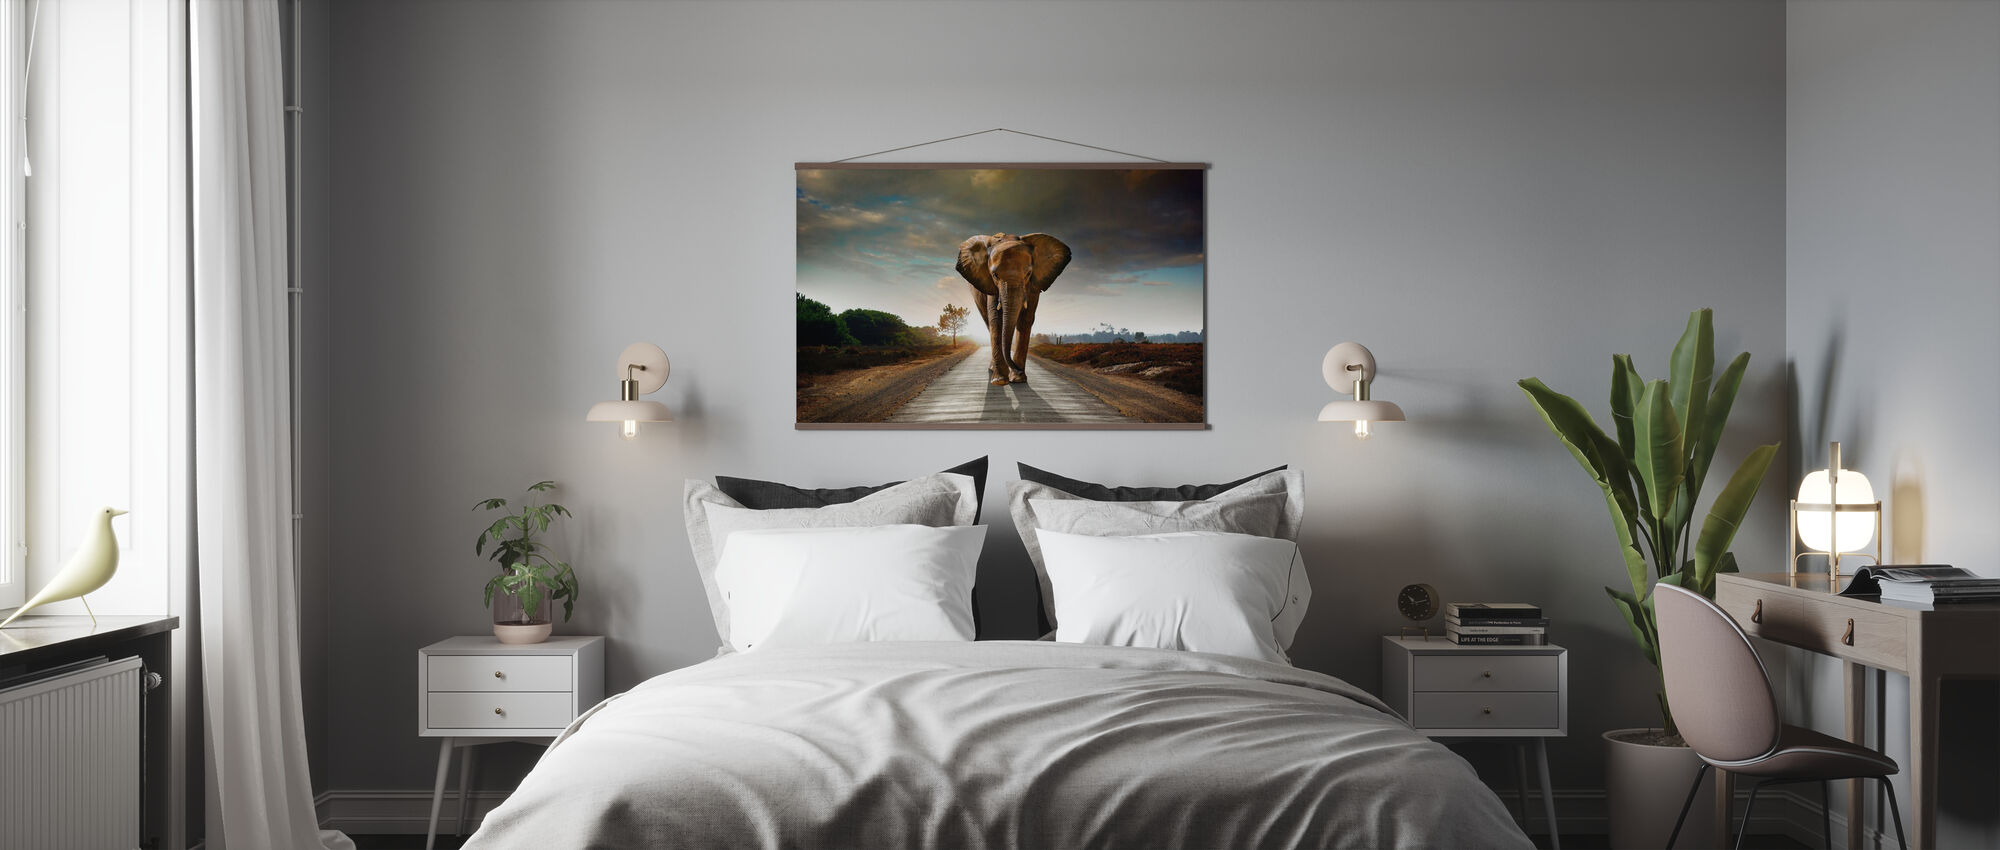 Elephant Road - Plakat - Soverom